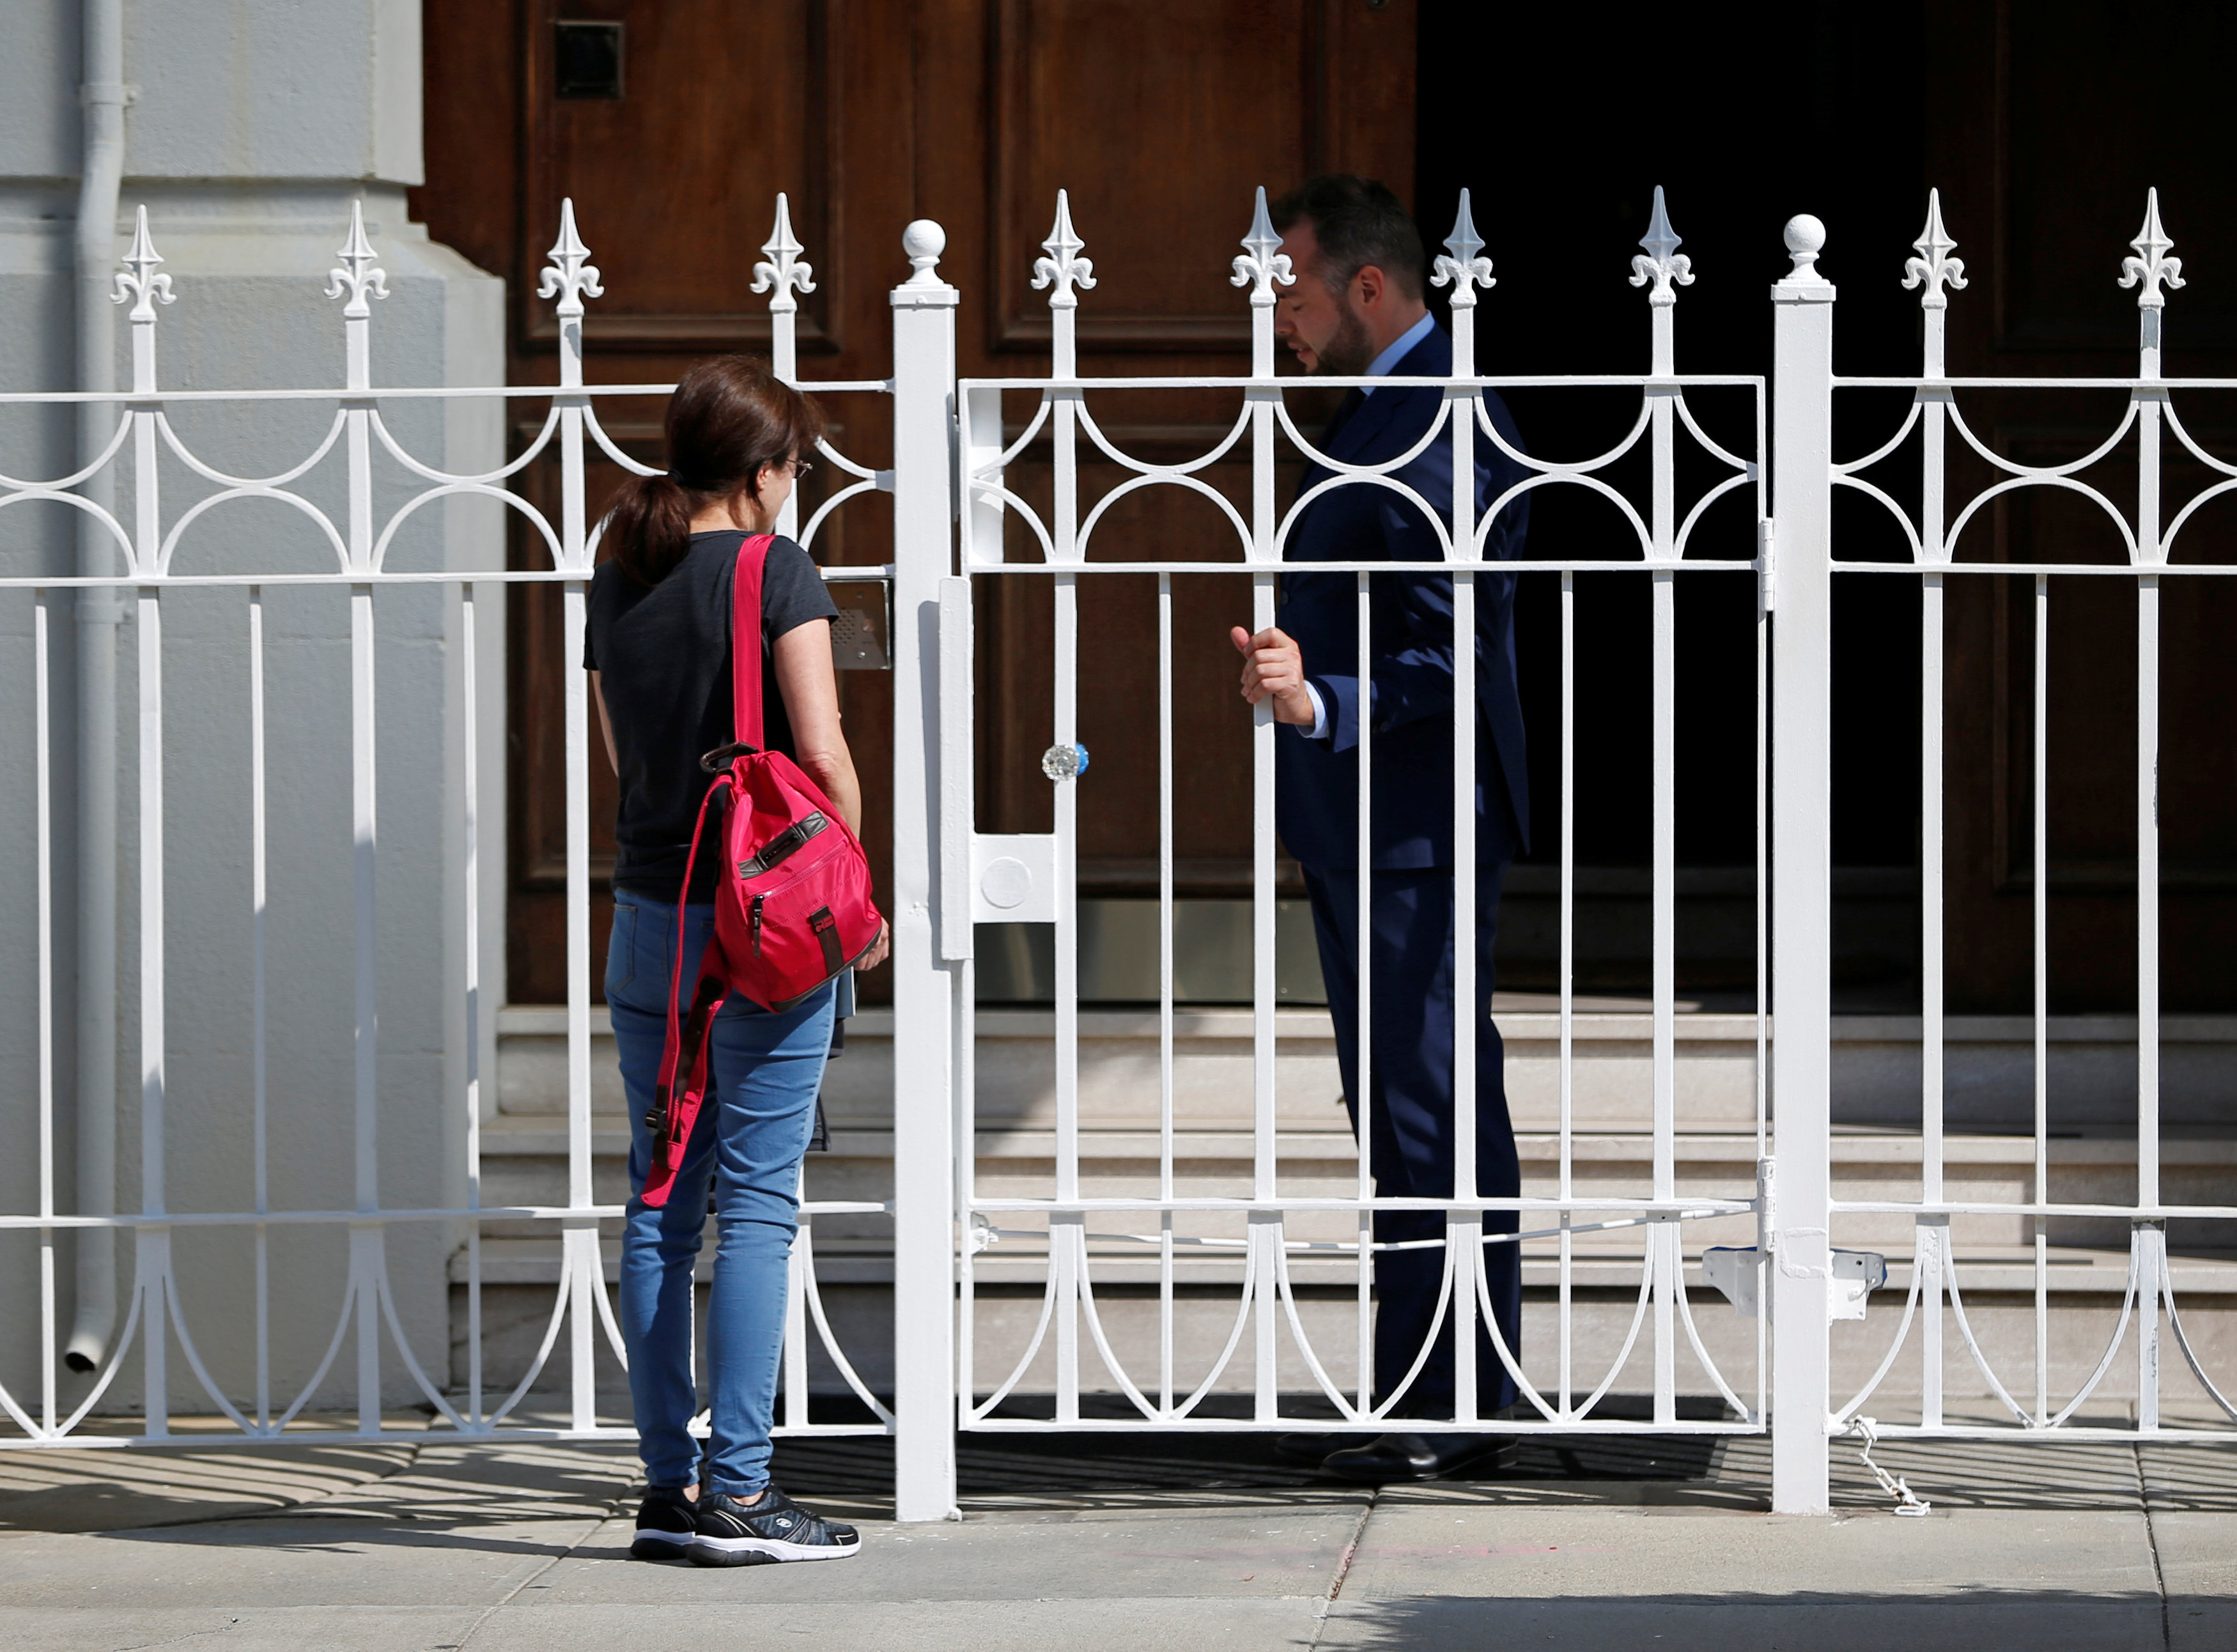 An unidentified woman talks with a man outside the gate at the entrance to the building of the Consulate General of Russia in San Francisco, Calif., on Aug. 31, 2017.   (REUTERS/Stephen Lam)